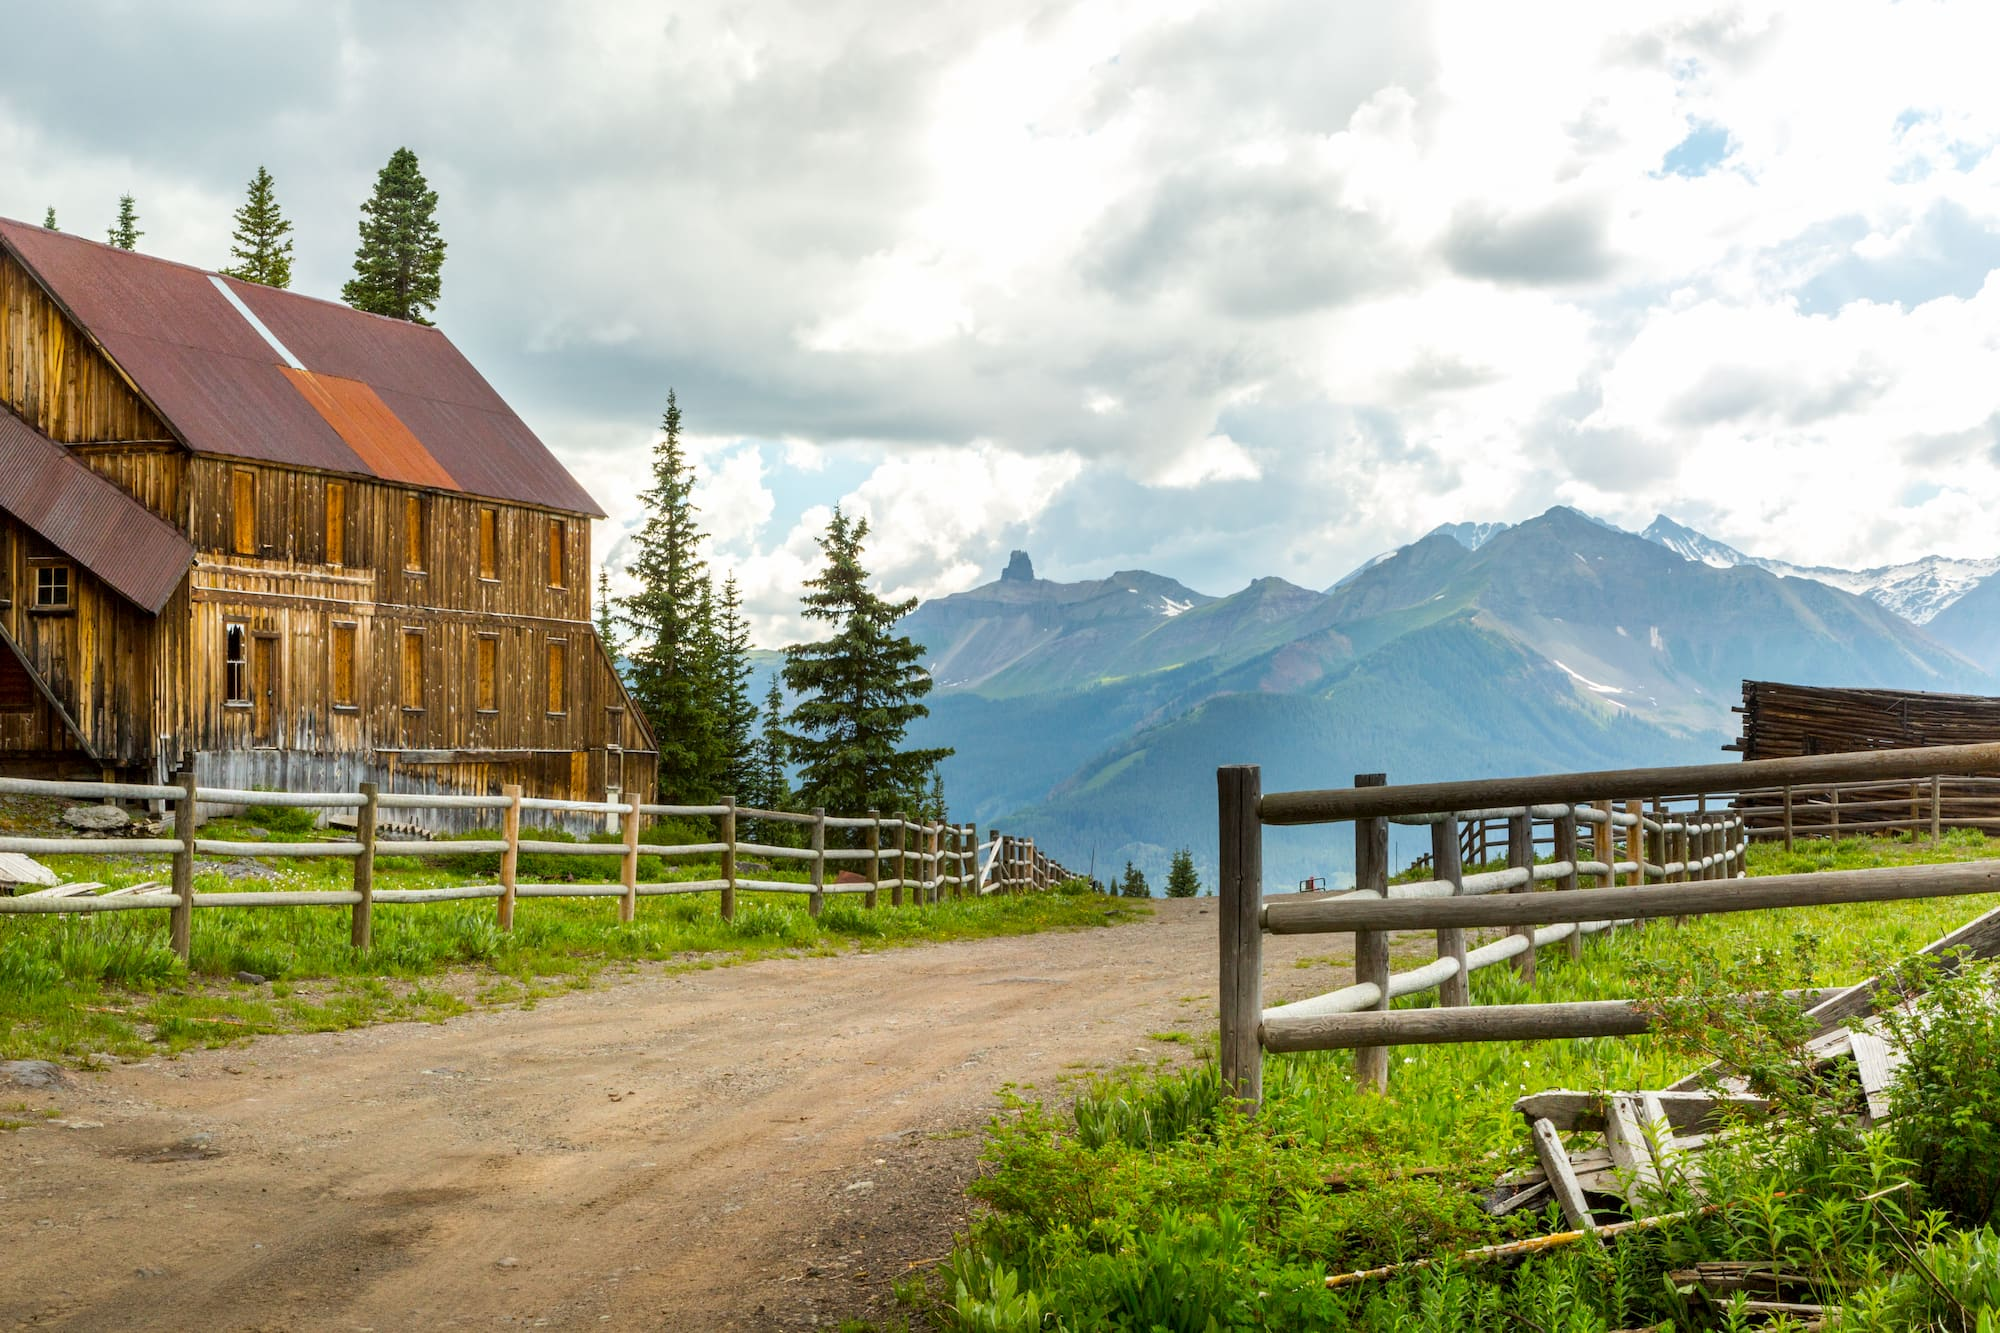 Road going through Alta Ghost Town near Telluride, Colorado, with Lizard Head Peak in the background, San Juan Mountains